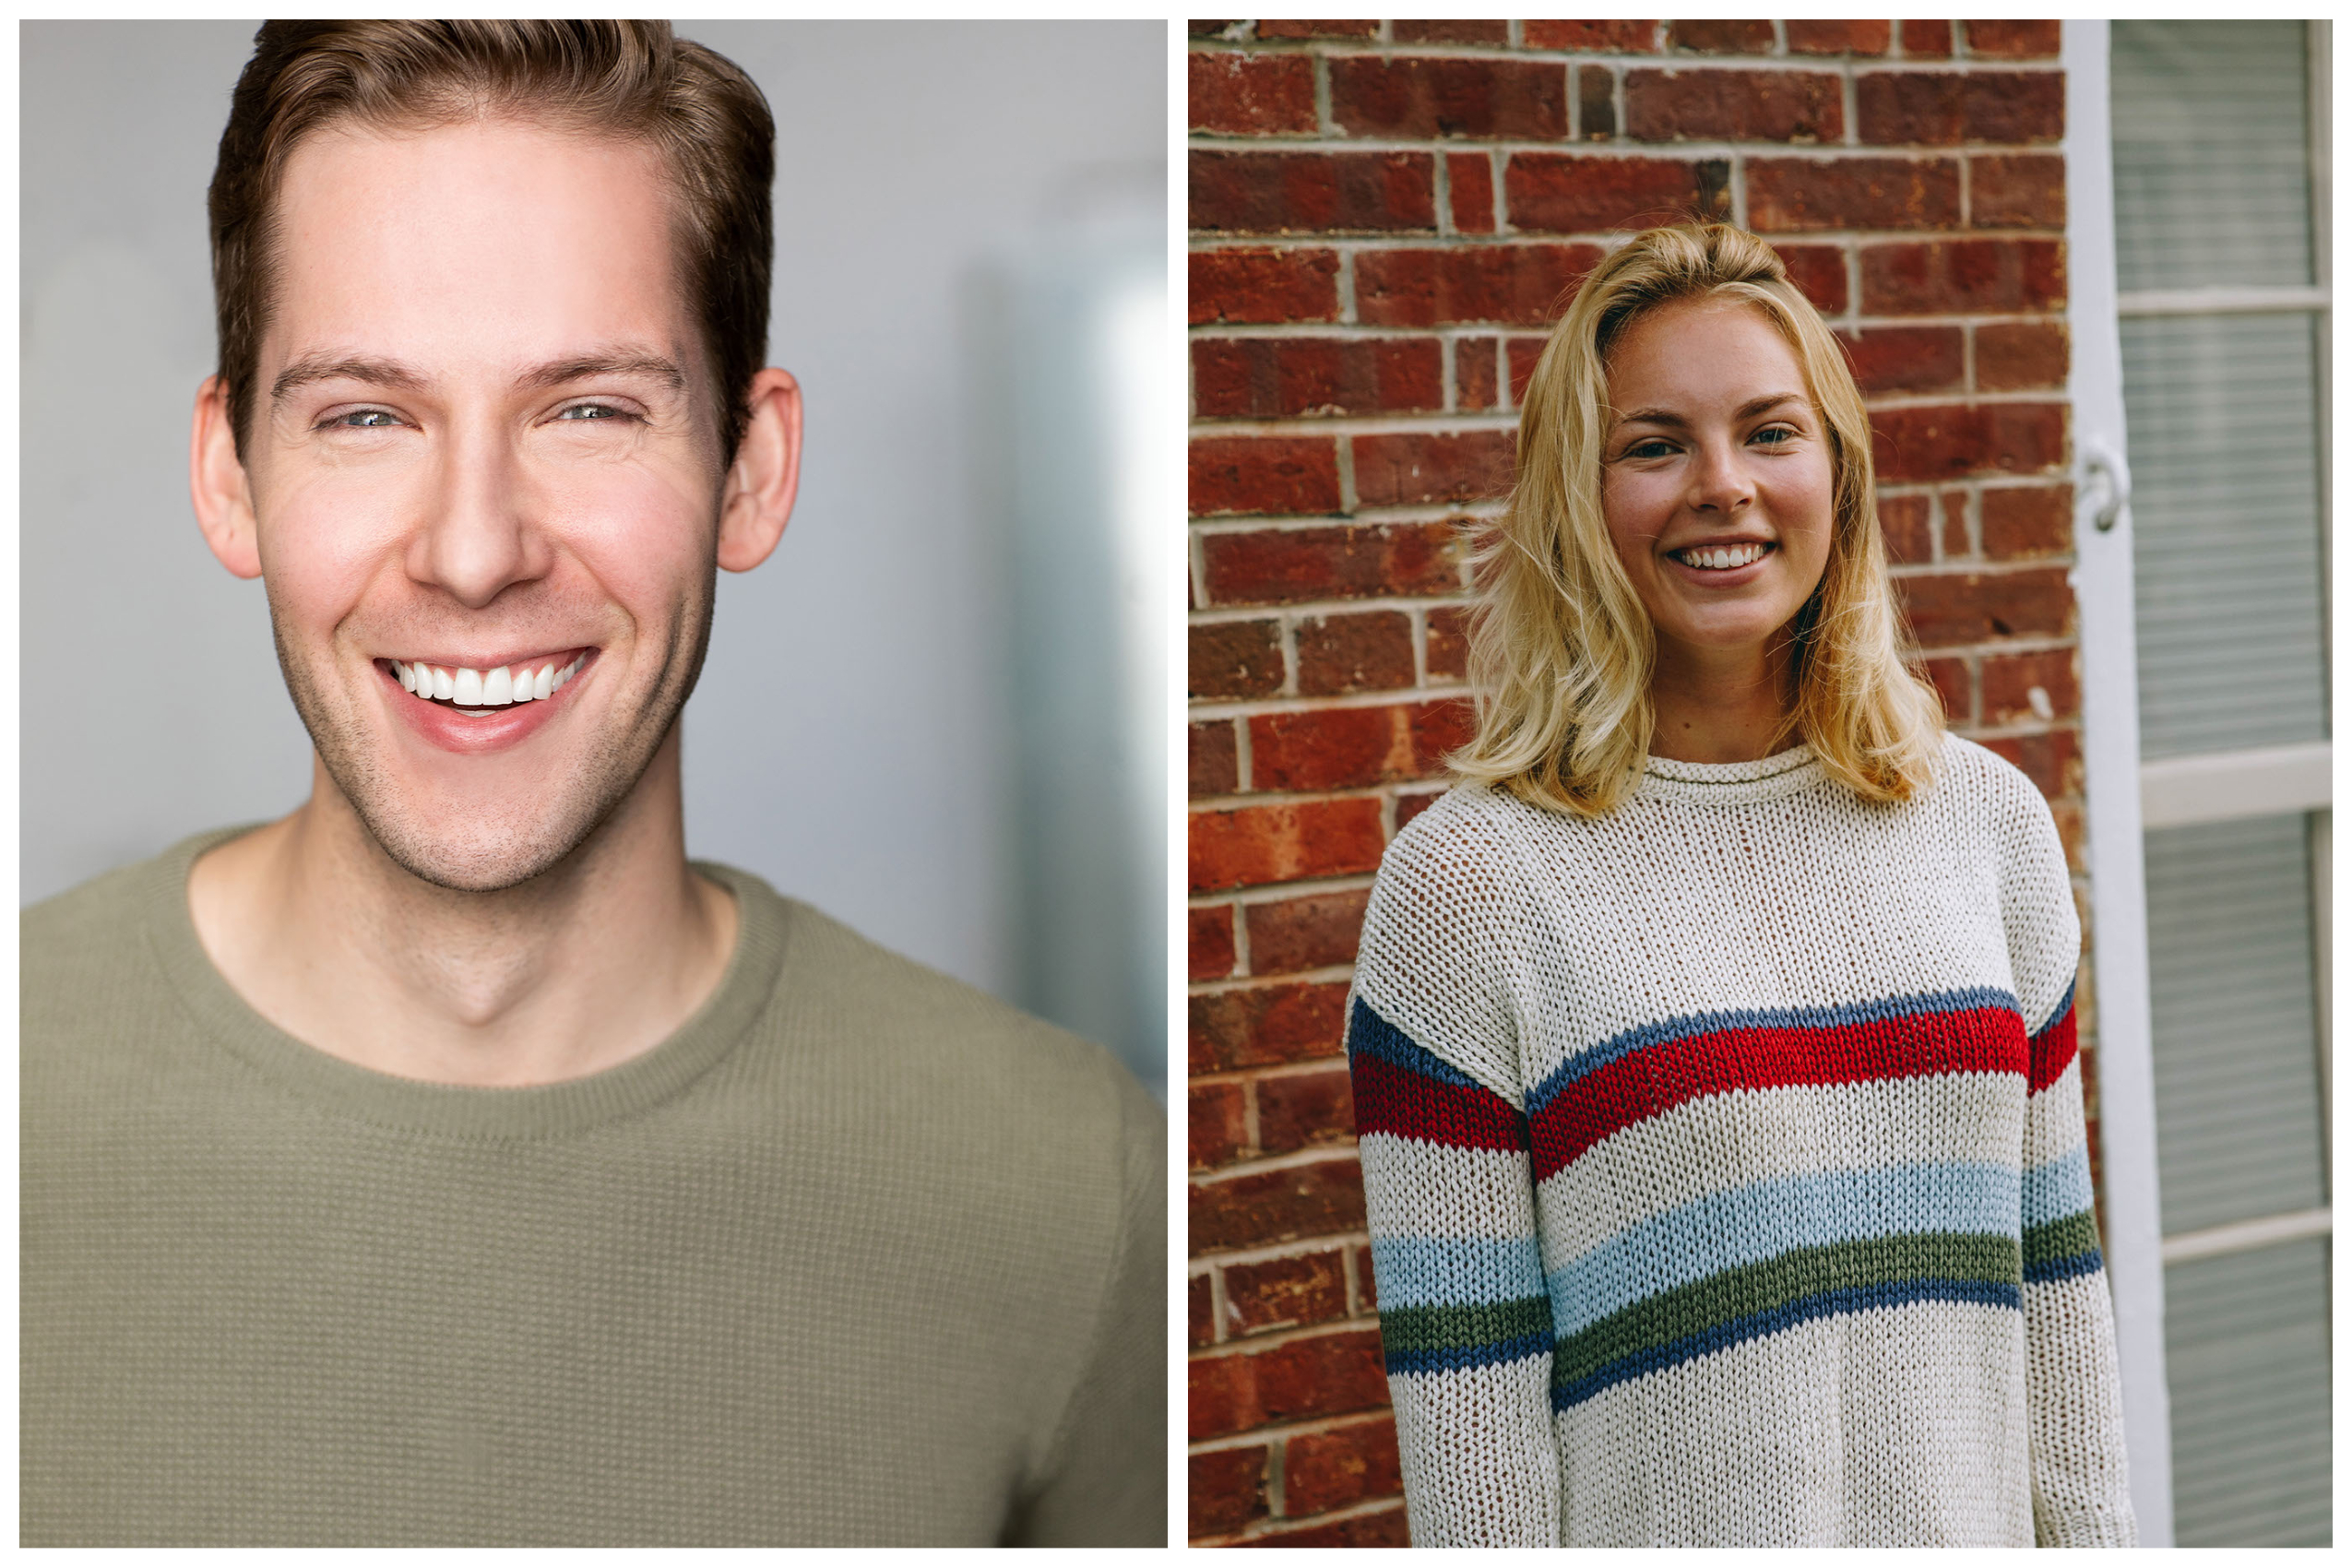 Headshots of Andrew Jones (left) and Annie Hollister (right). They are the univ…